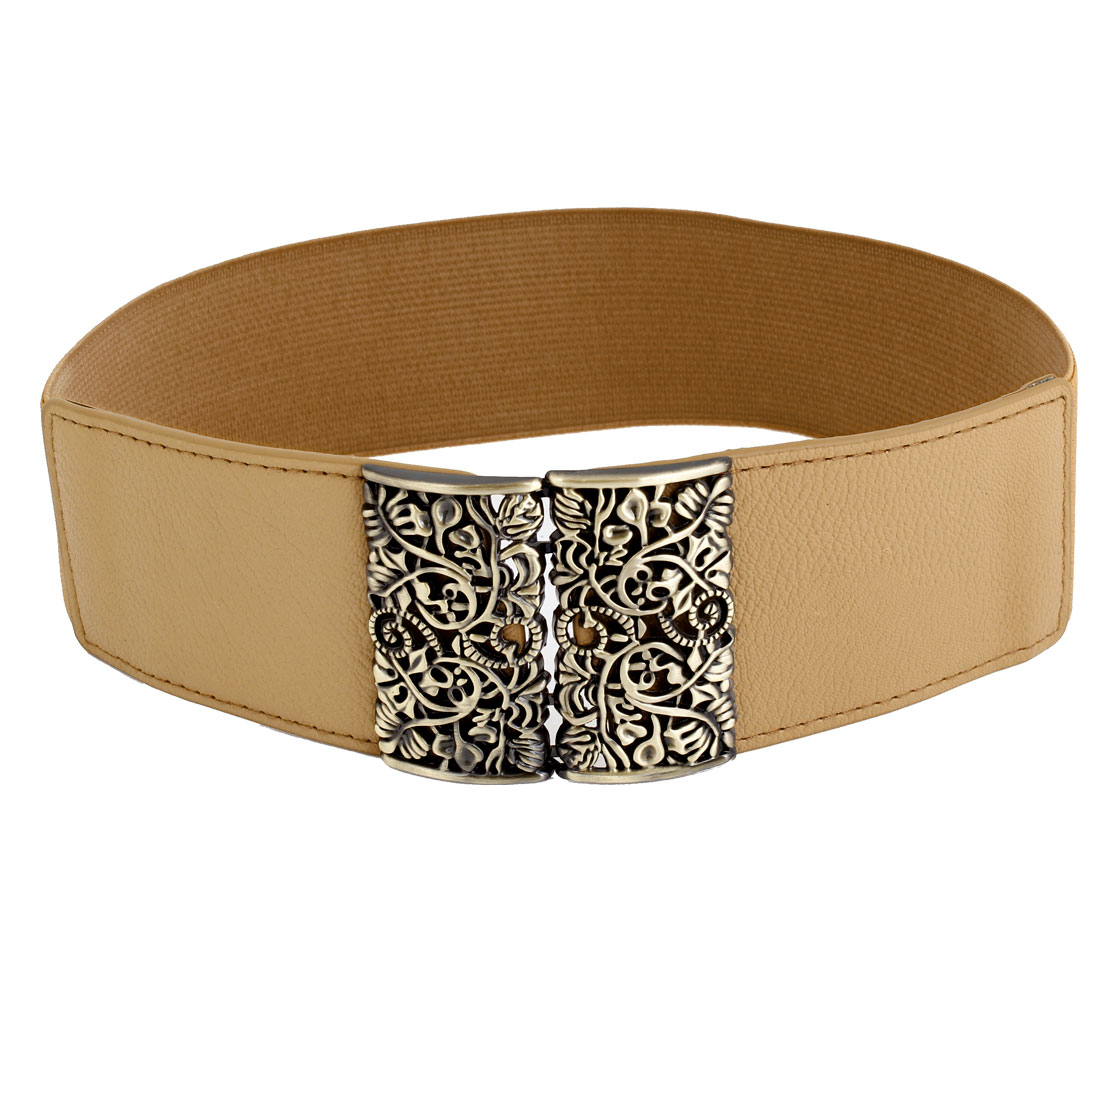 Women Interlocking Buckle Litchi Print Elastic Waist Cinch Belt Brown